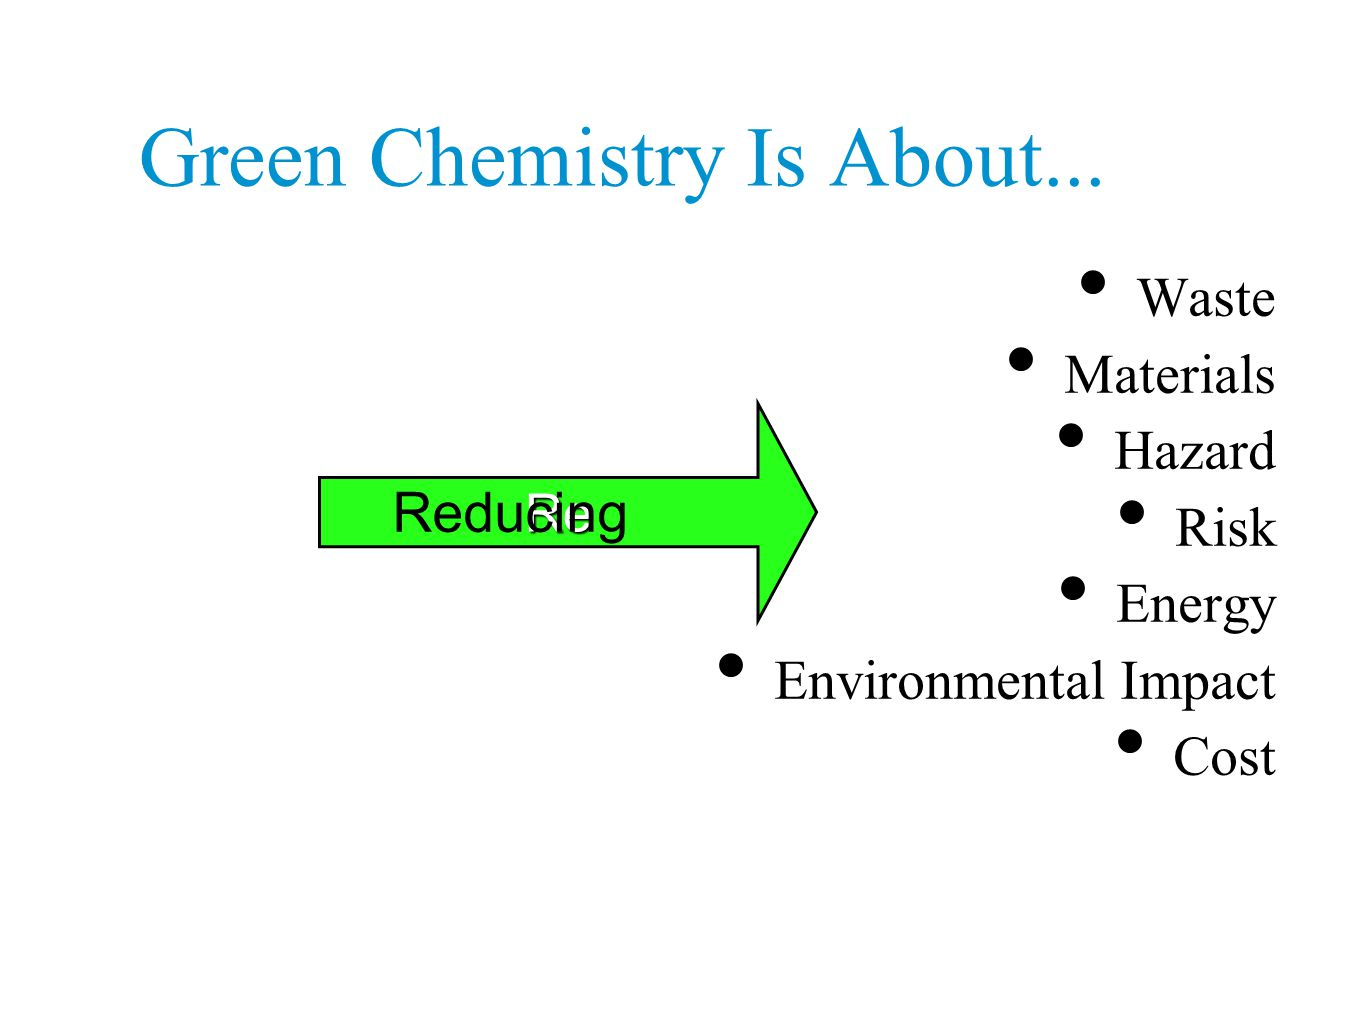 Green Chemistry Is About... Waste Materials Hazard Risk Energy Environmental Impact Cost Re Reducing